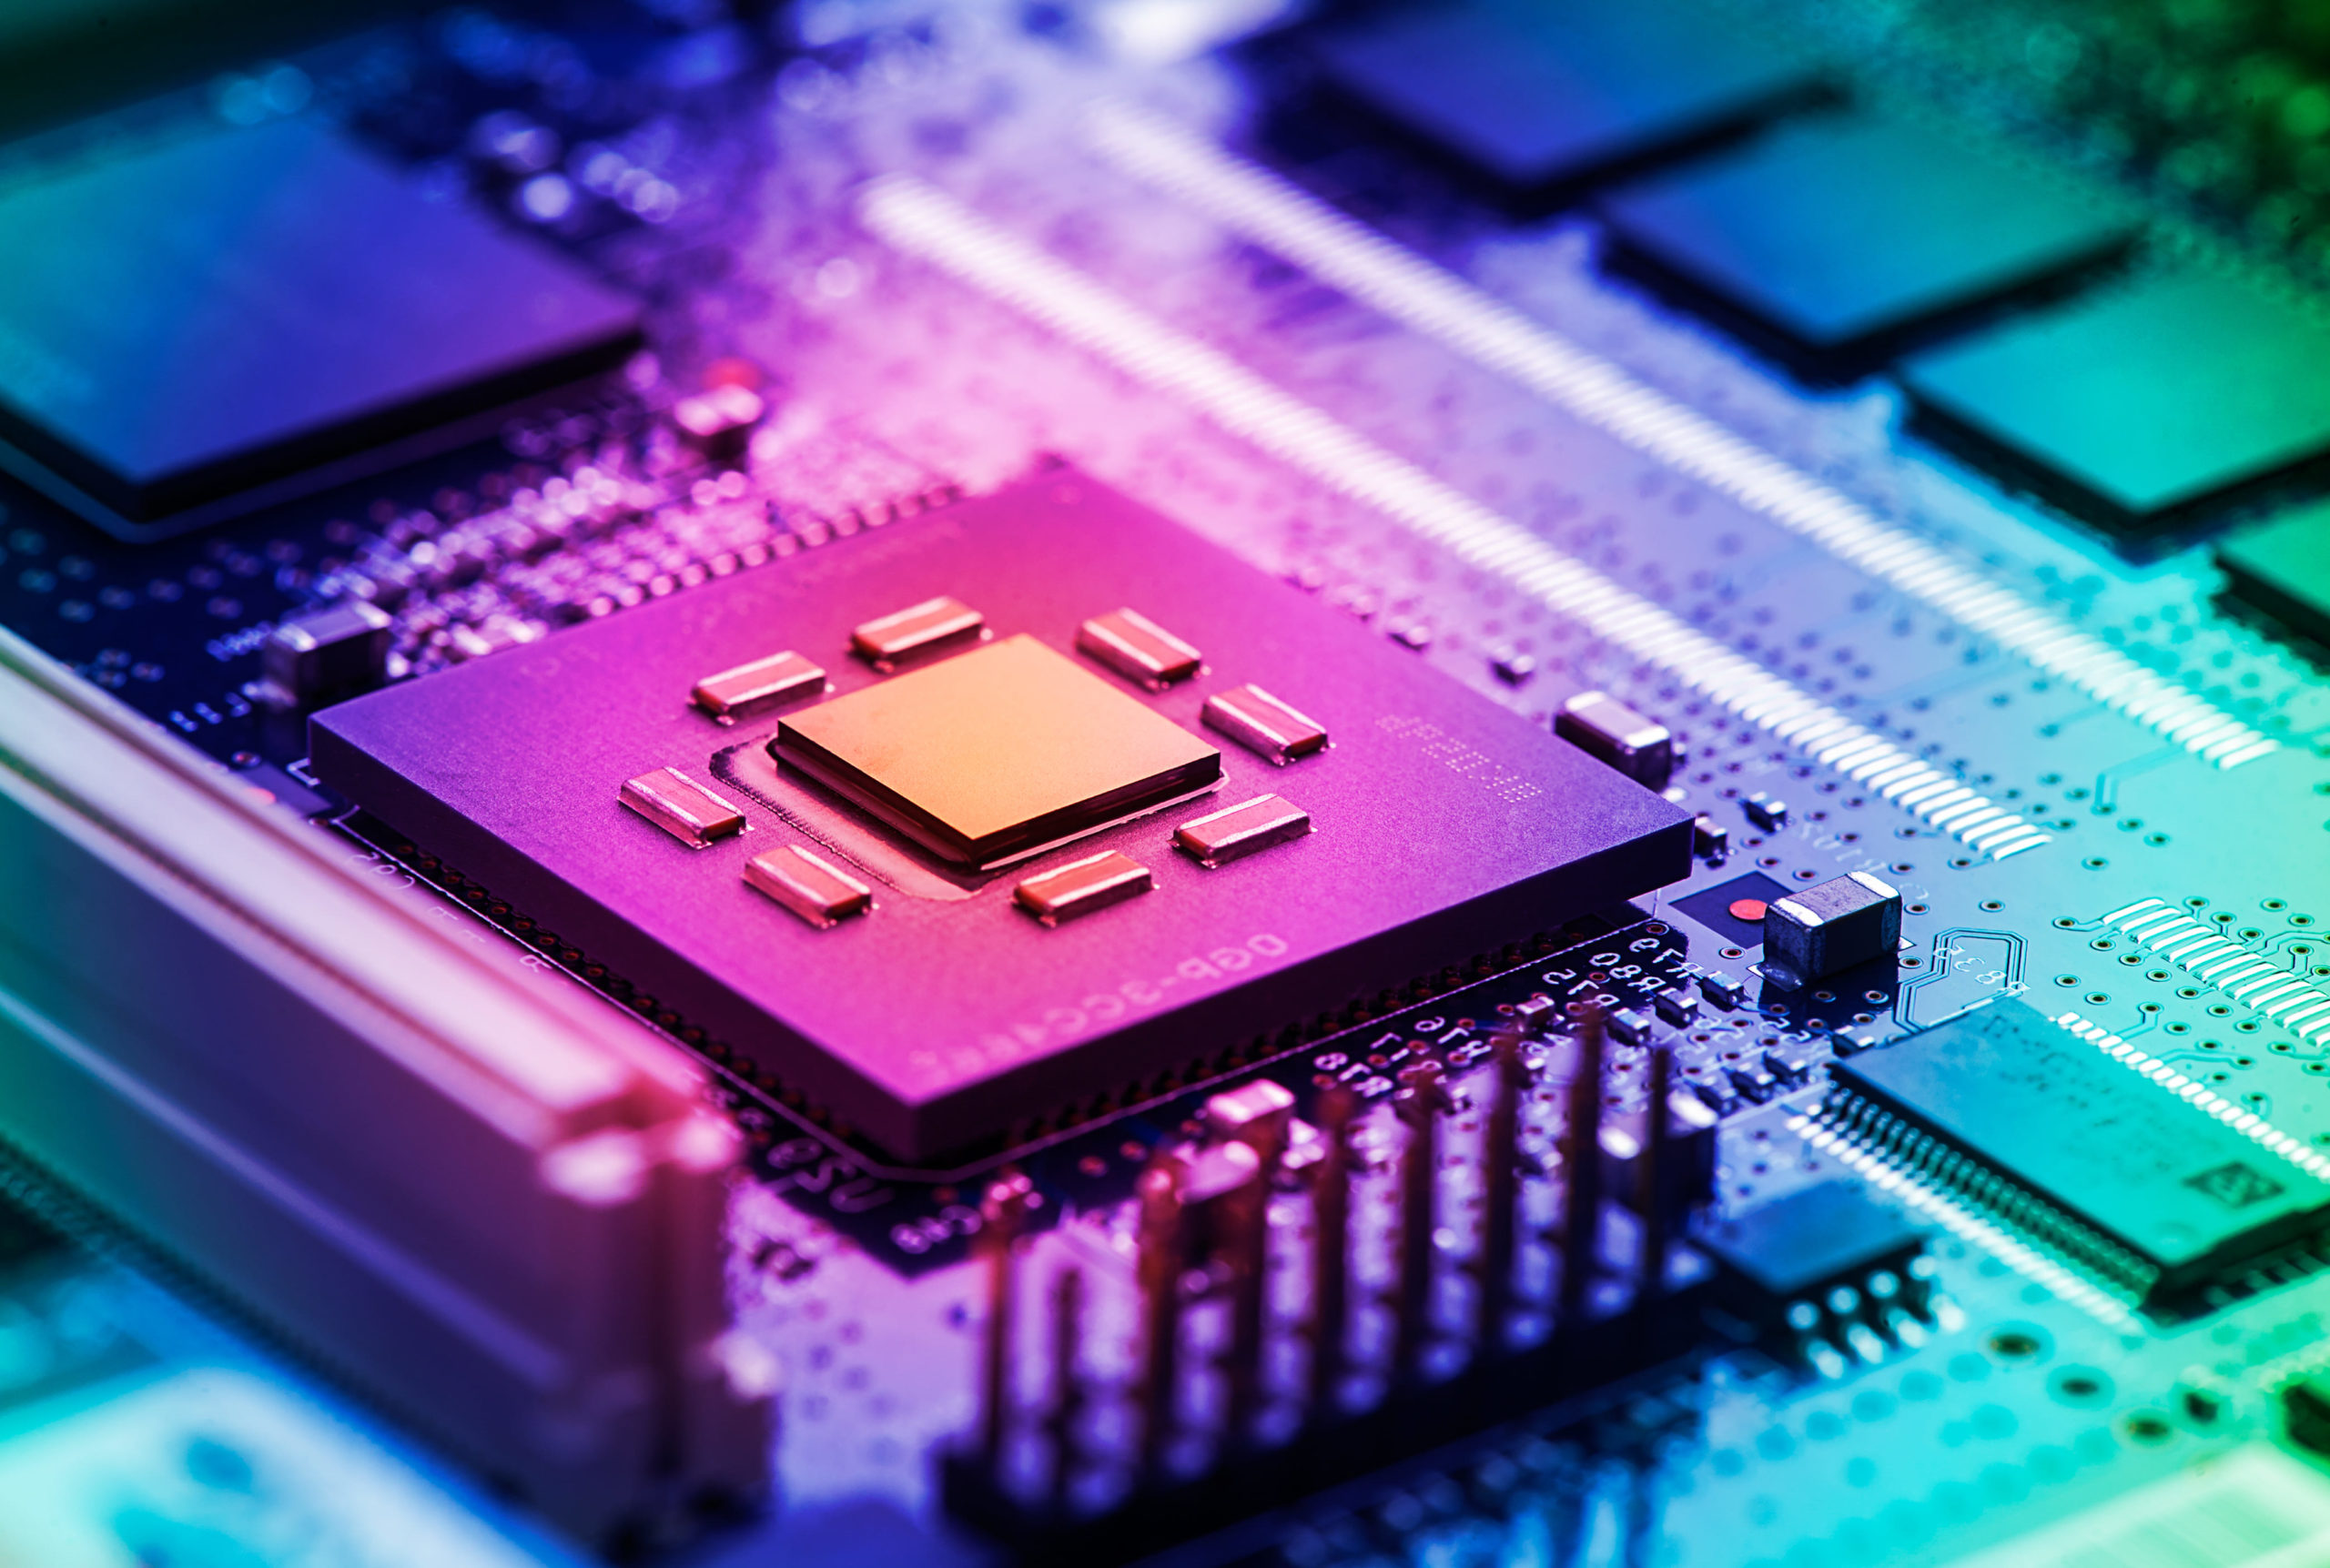 Intricate circuit board with a micro-chip illustrating the tech Sector